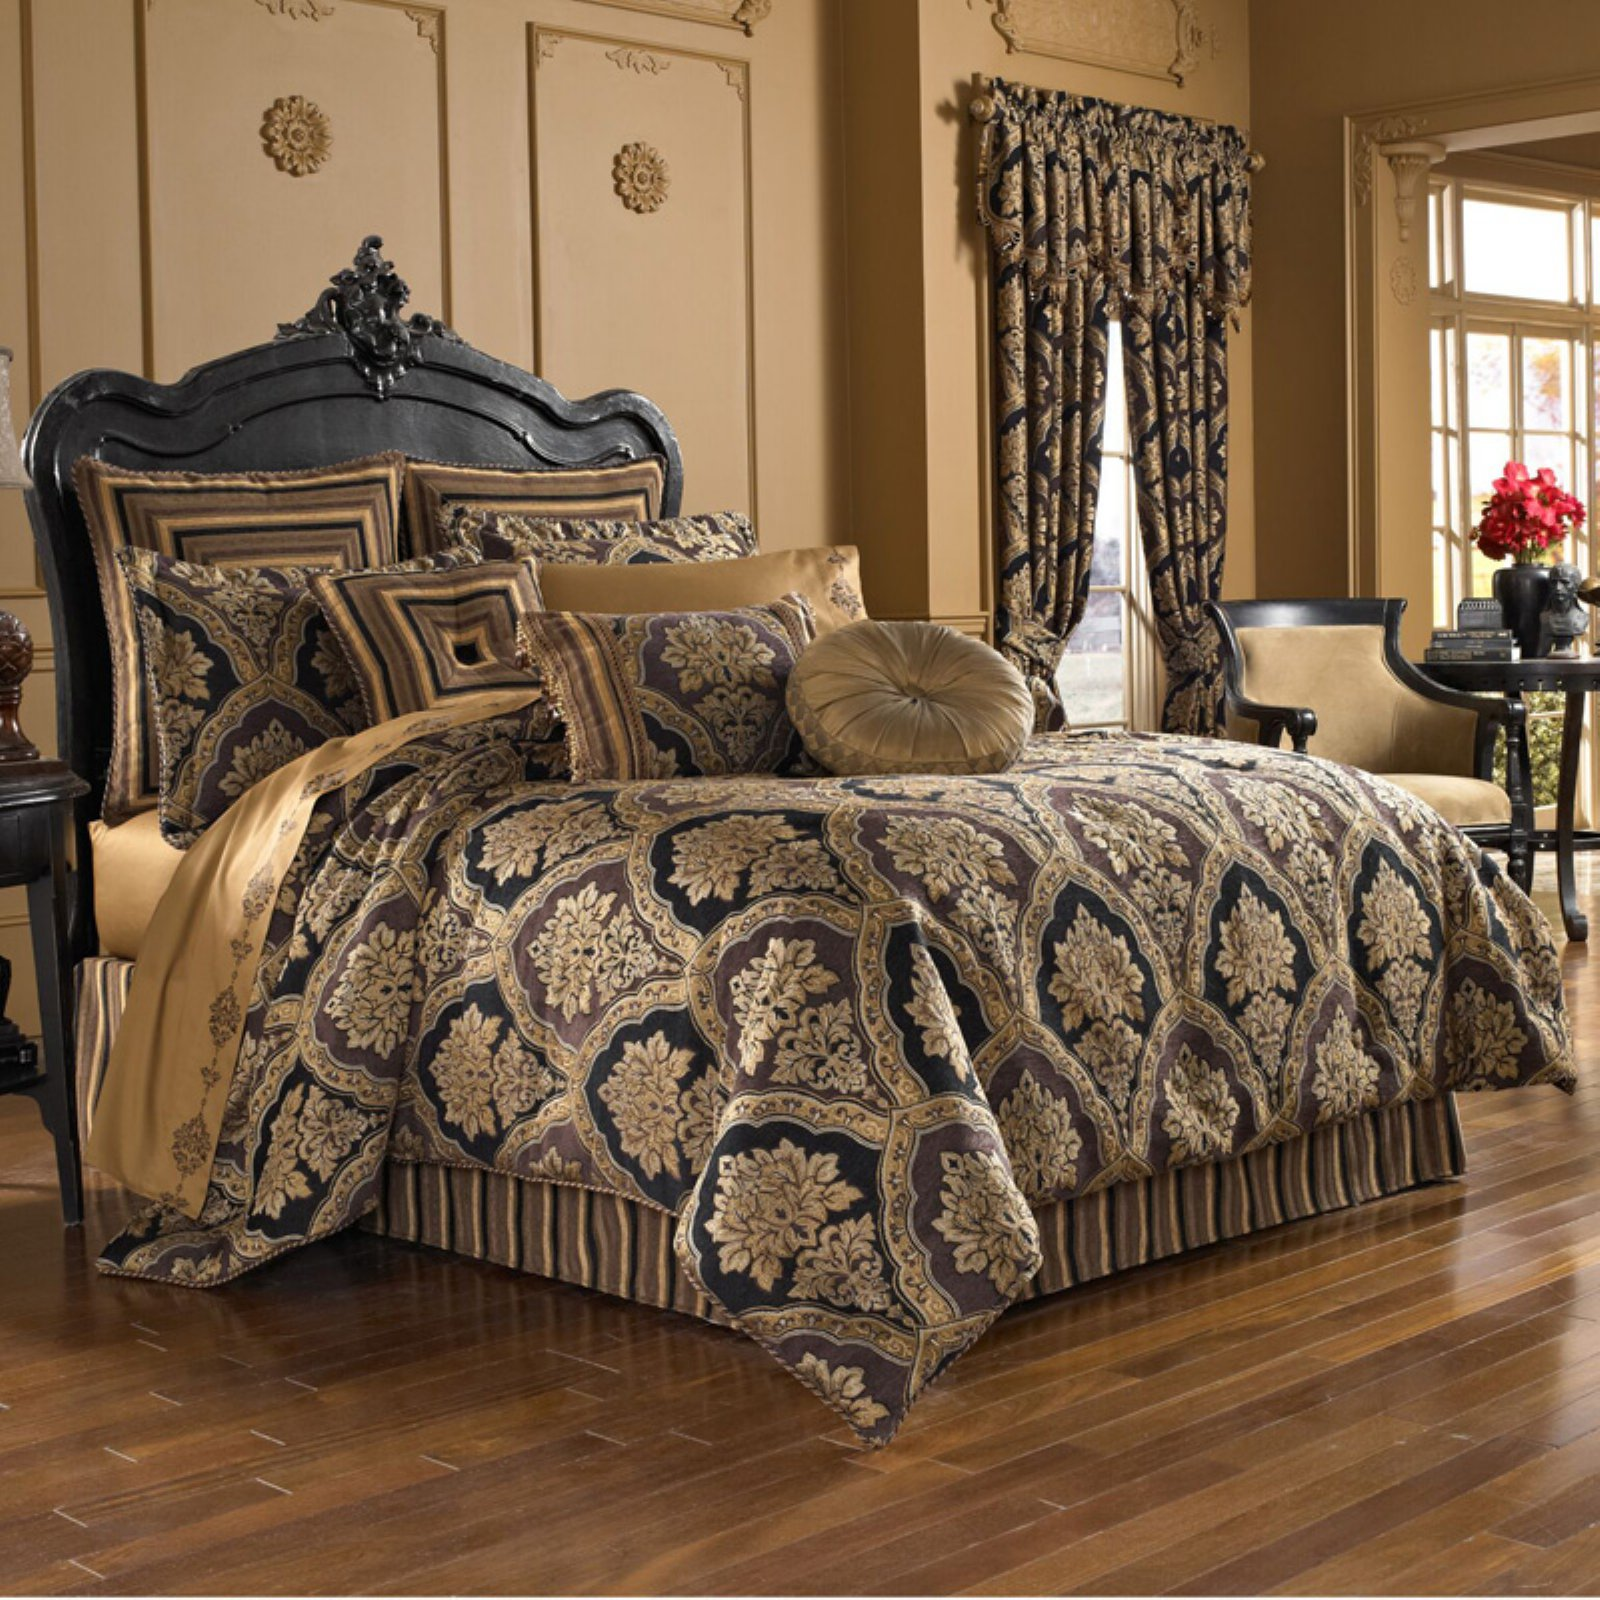 Reilly 4 Piece Woven Chenille Damask Comforter Set by Five